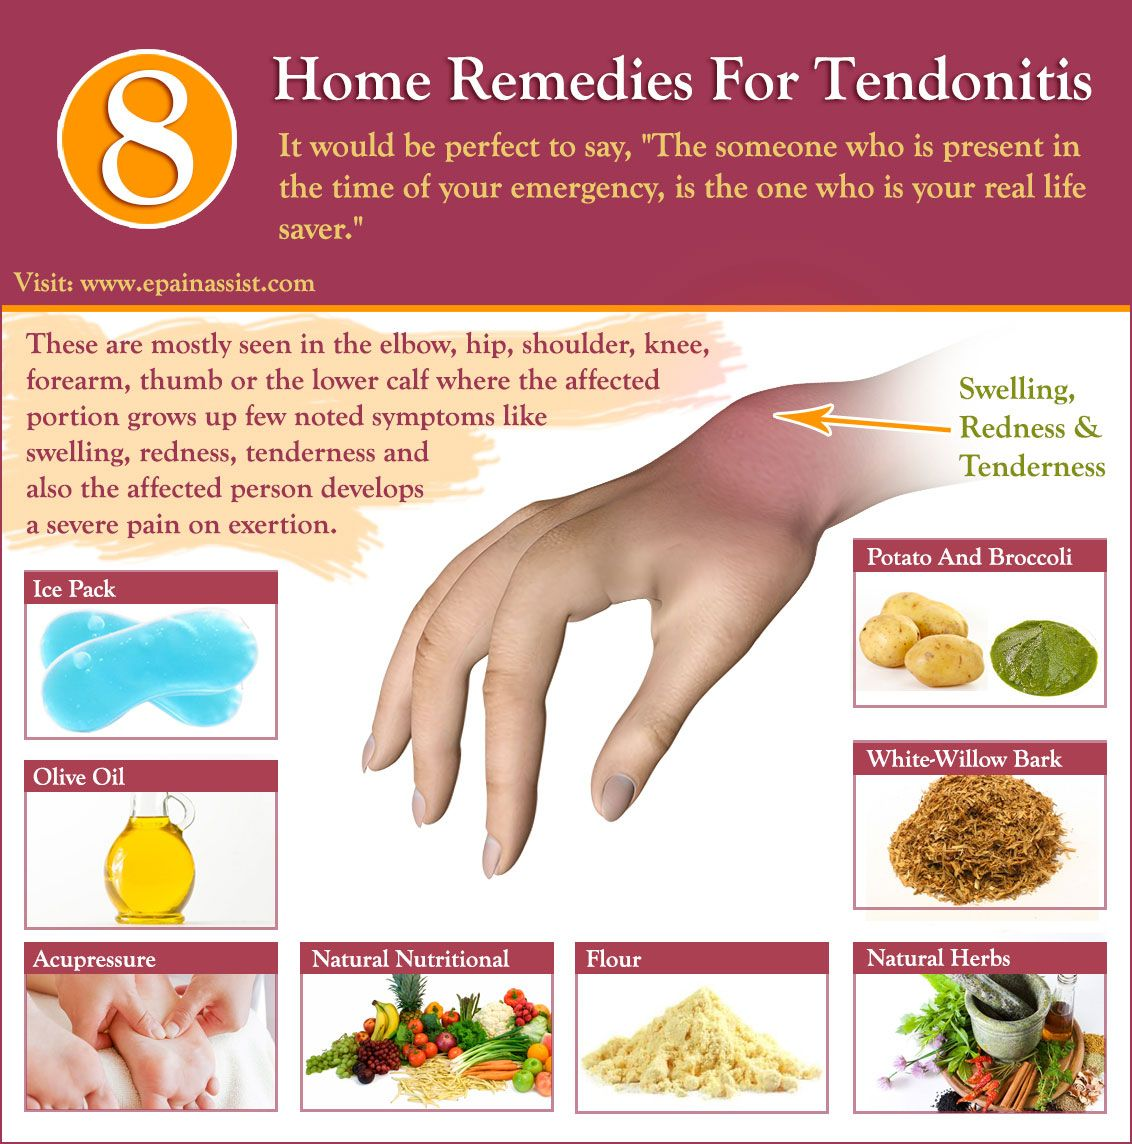 Home Remedies For Tendonitis Epainassist Pinterest Homeopathy Cure For Rheumatoid Arthritis Holistic Remedy Rheumatoid Arthritis